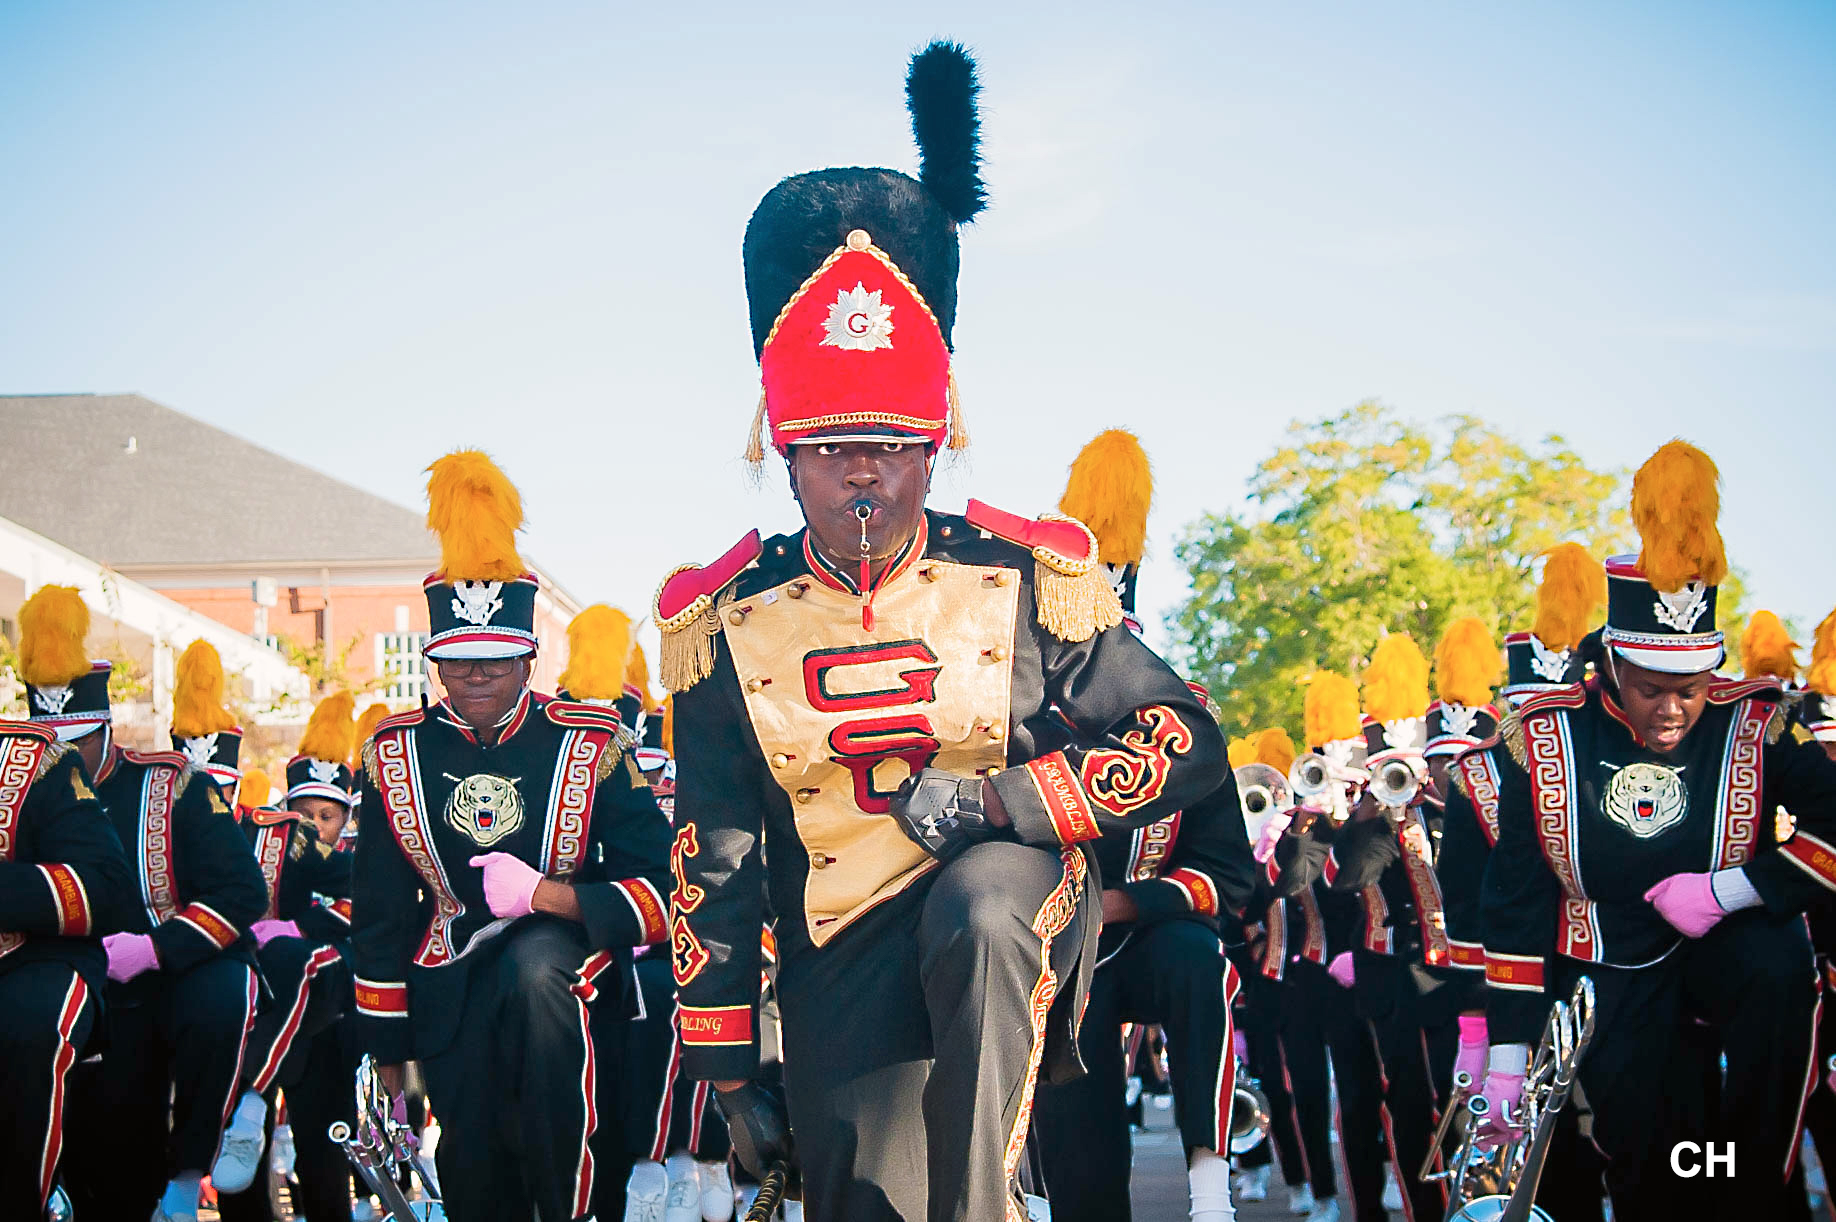 Grambling State University - Grambling State Marching Band